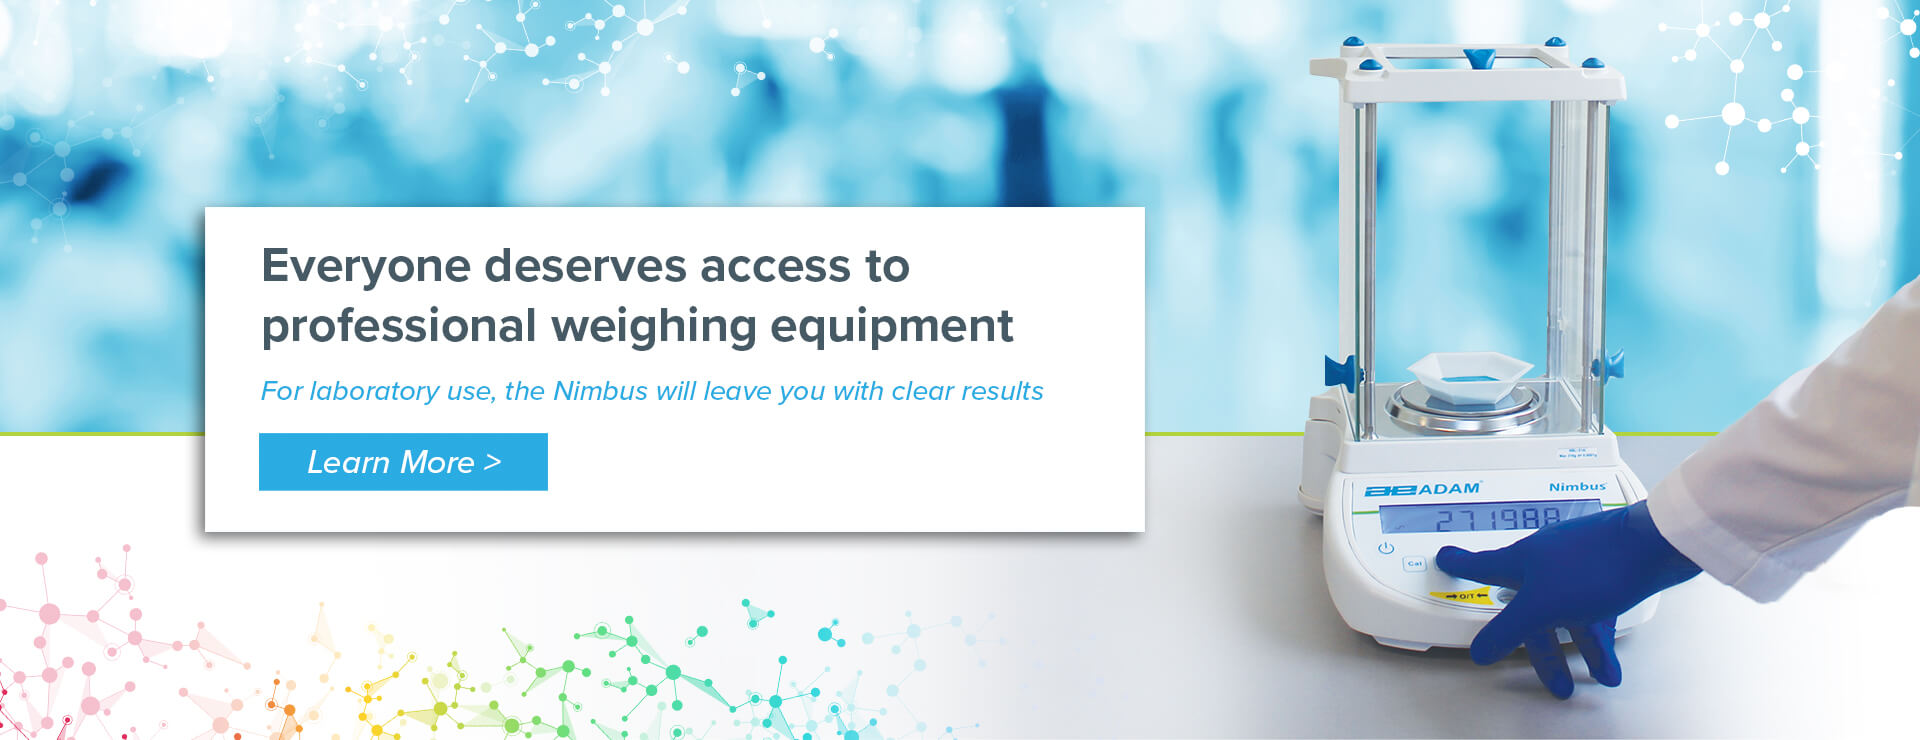 Everyone deserves access to professional weighing equipment. For laboratory use, the Nimbus will leave you with clear results.